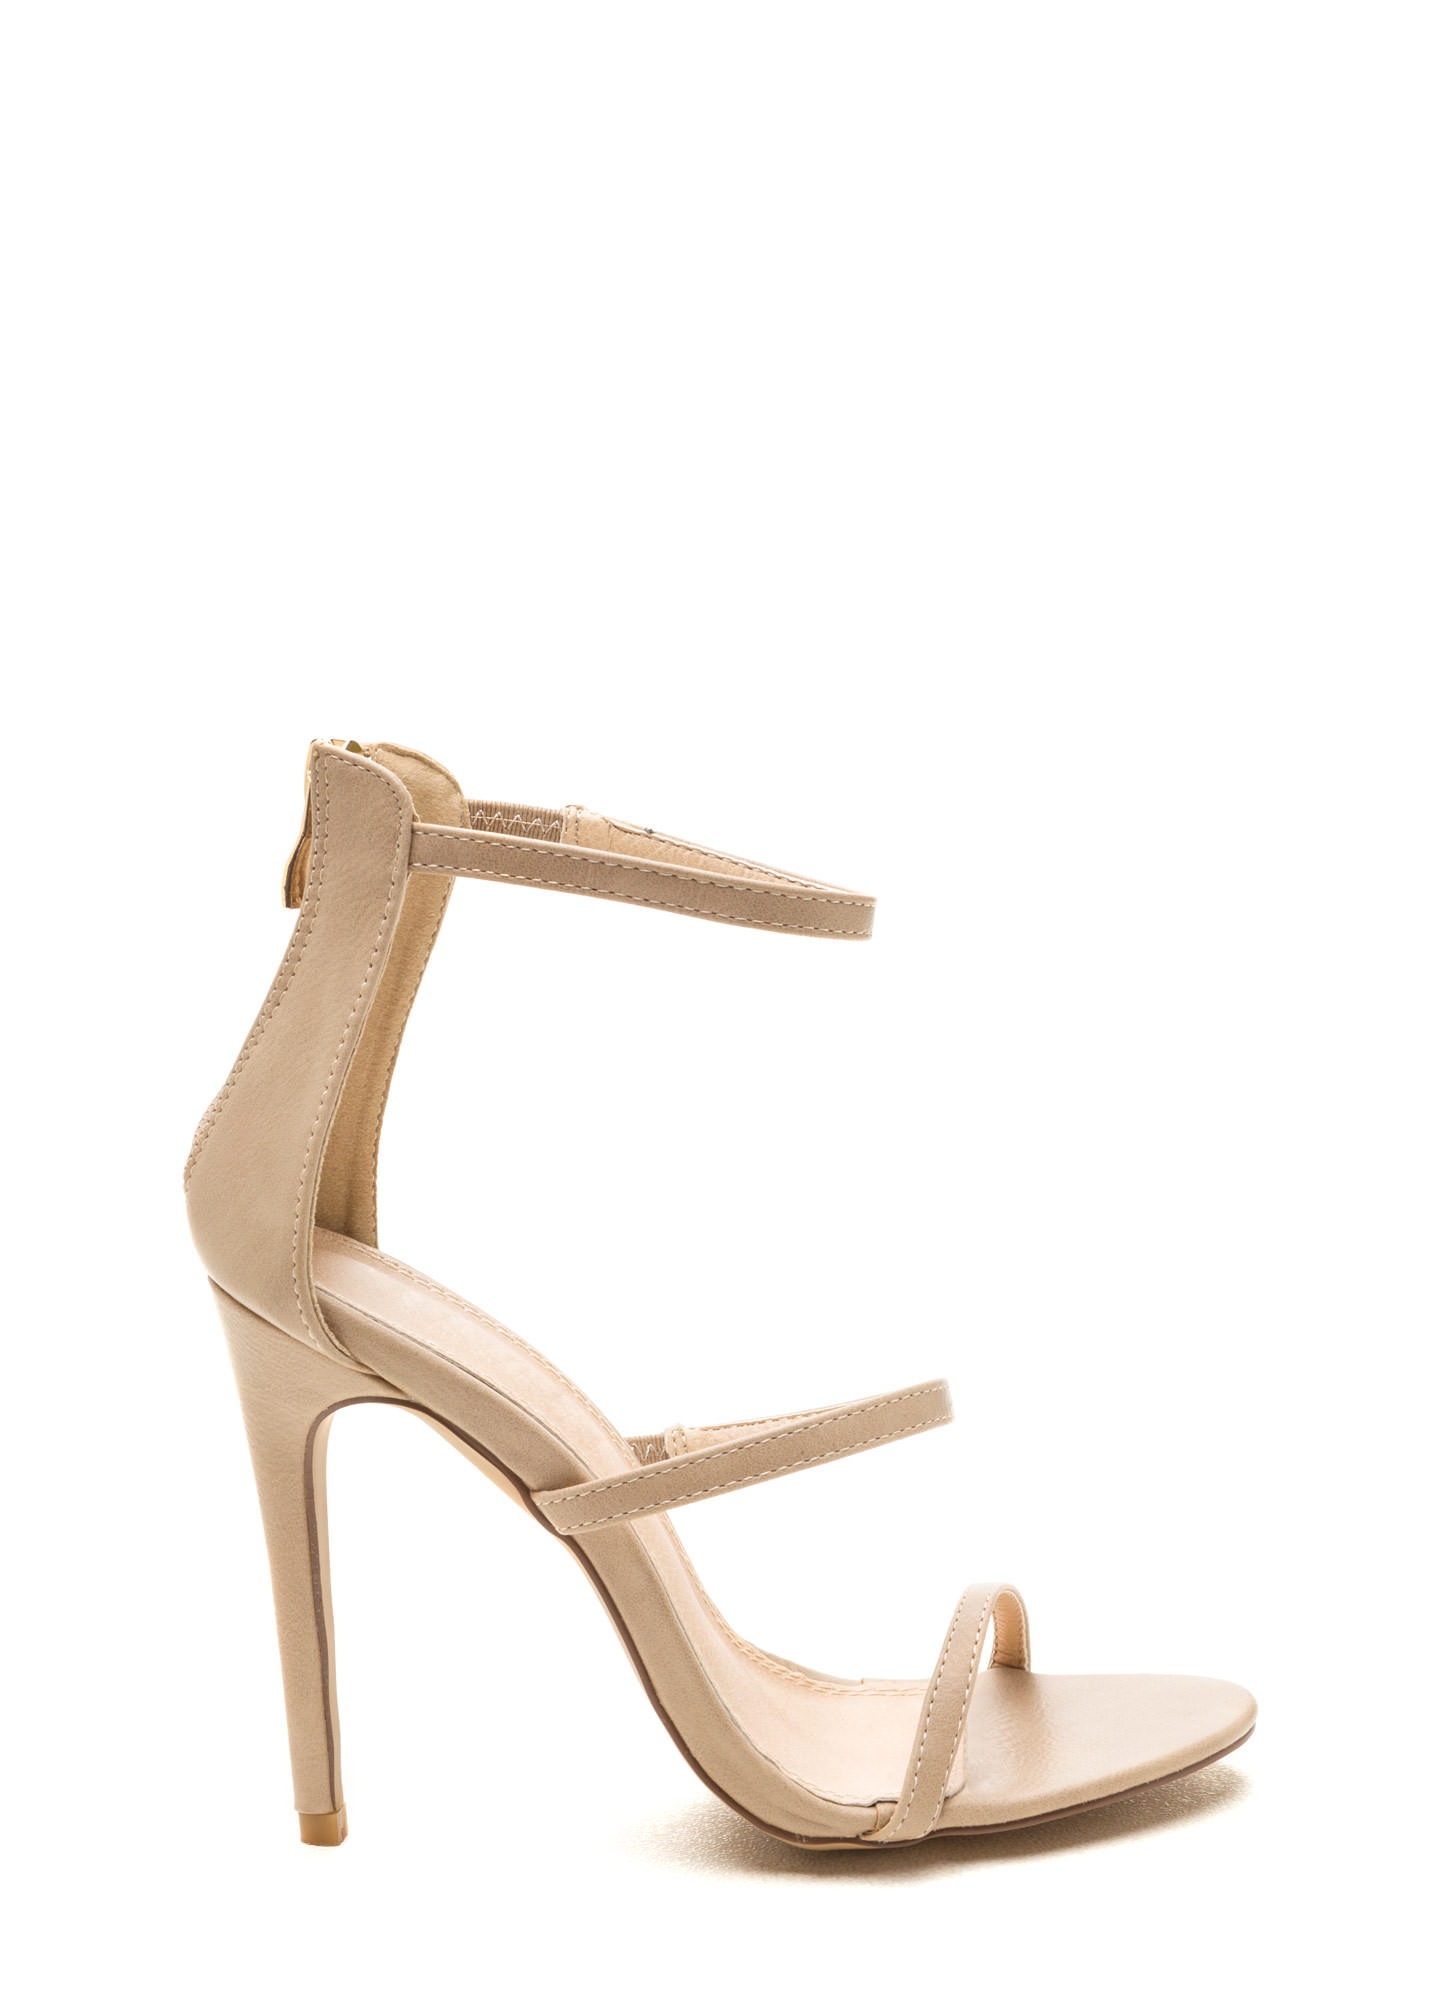 Strappy Life Single-Sole Heels NUDE